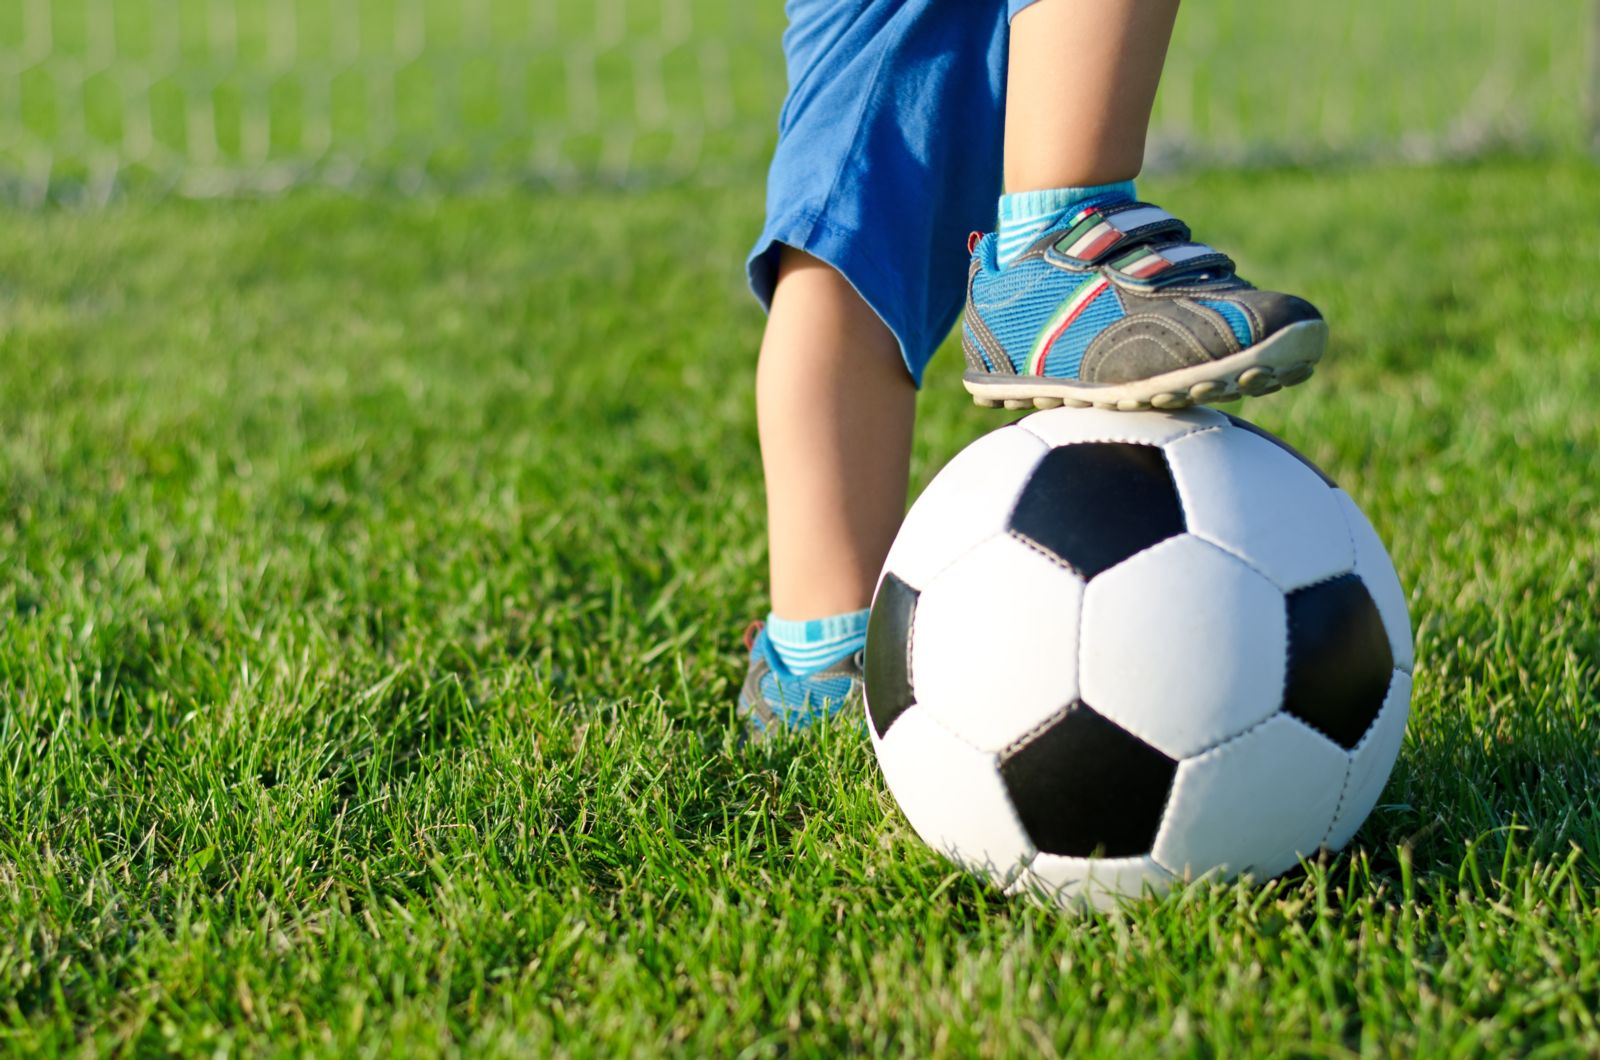 Young soccer players are at high-risk for inflamed growth plates and heel pain